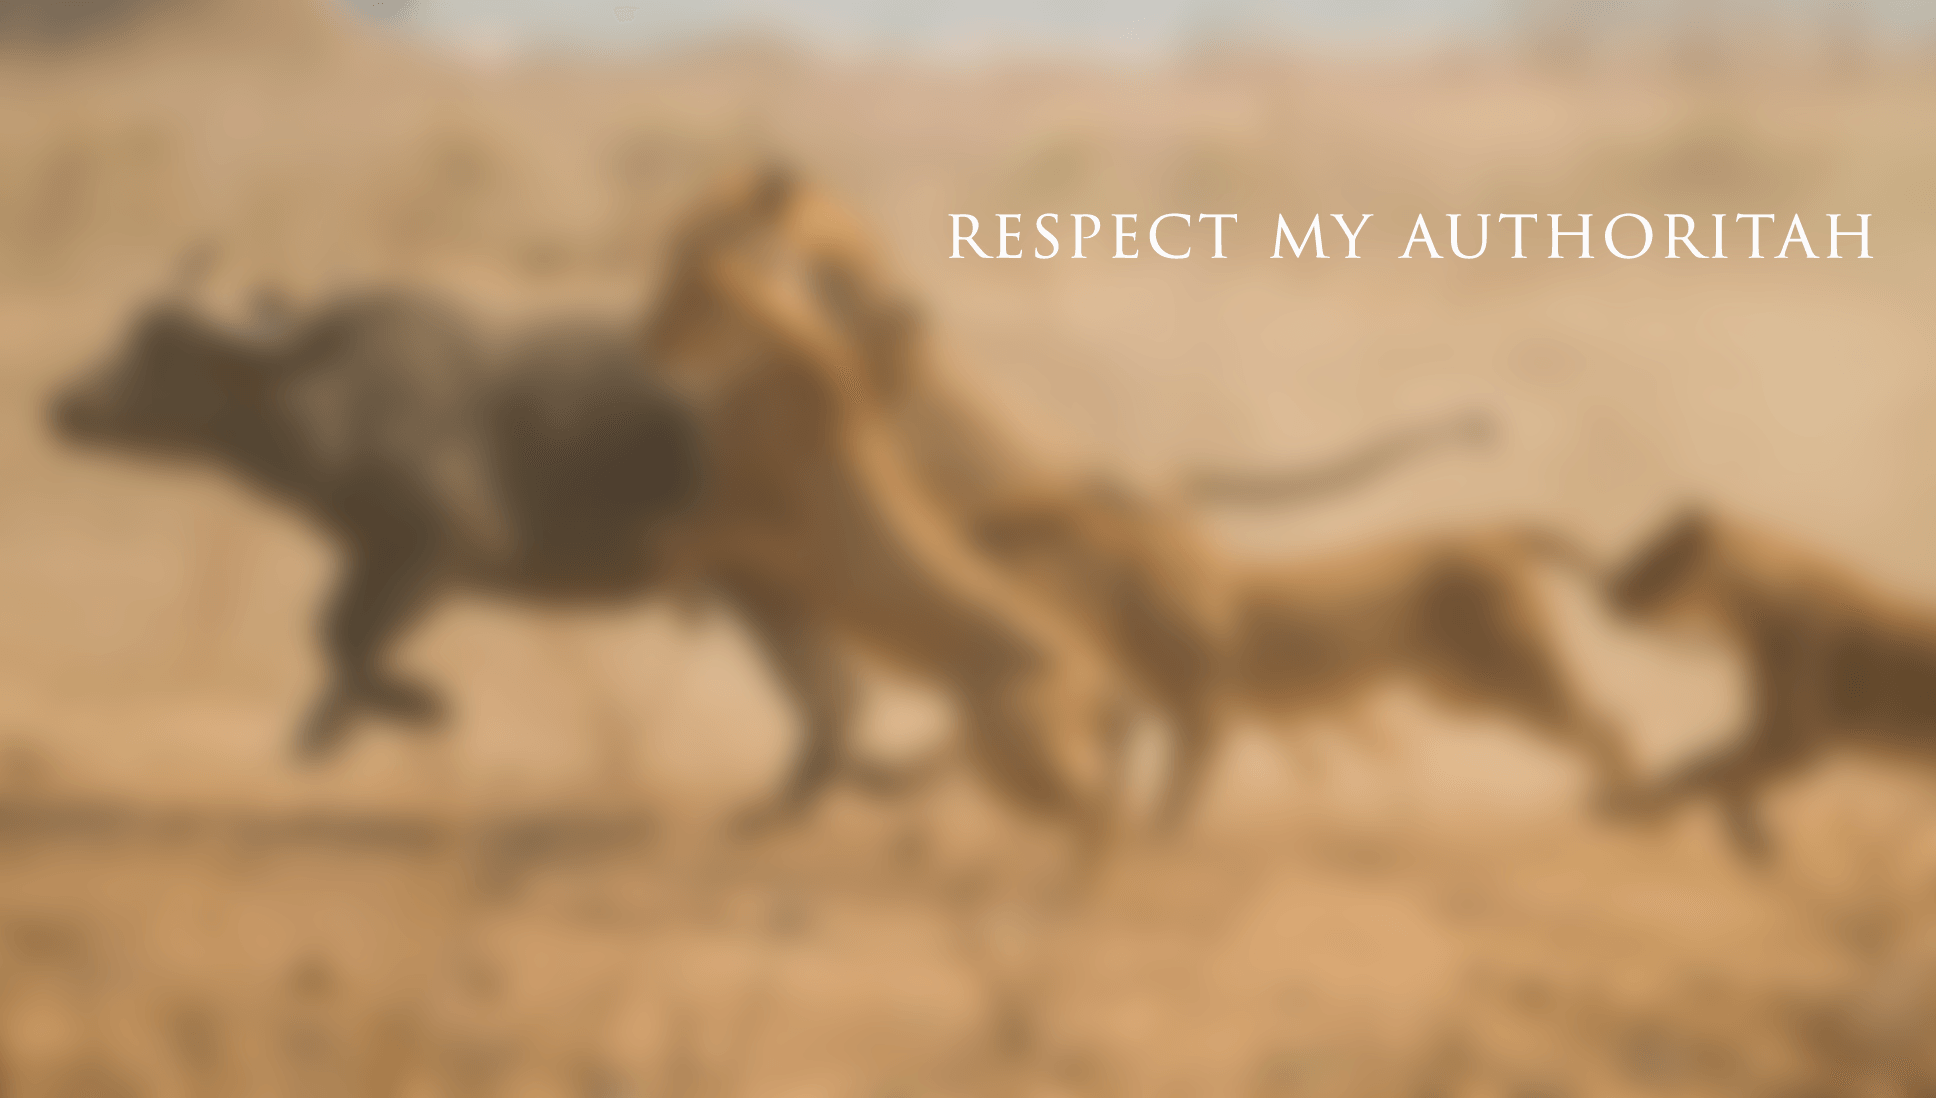 respect my authoritah